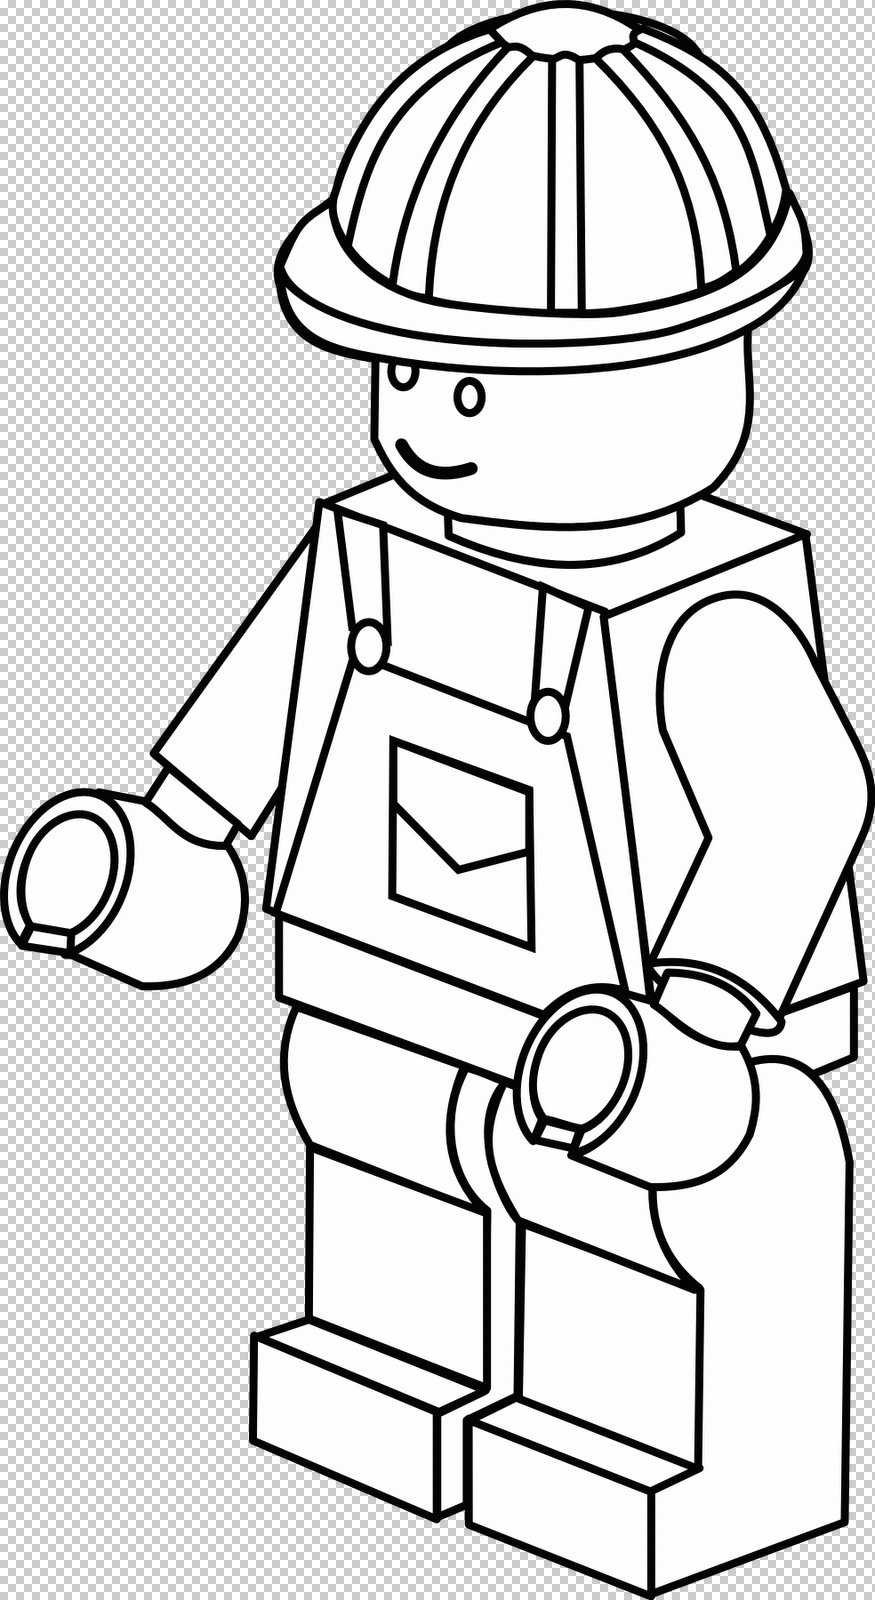 car2go lego coloring pages | Colorindo e Desenhando: Lego para Colorir